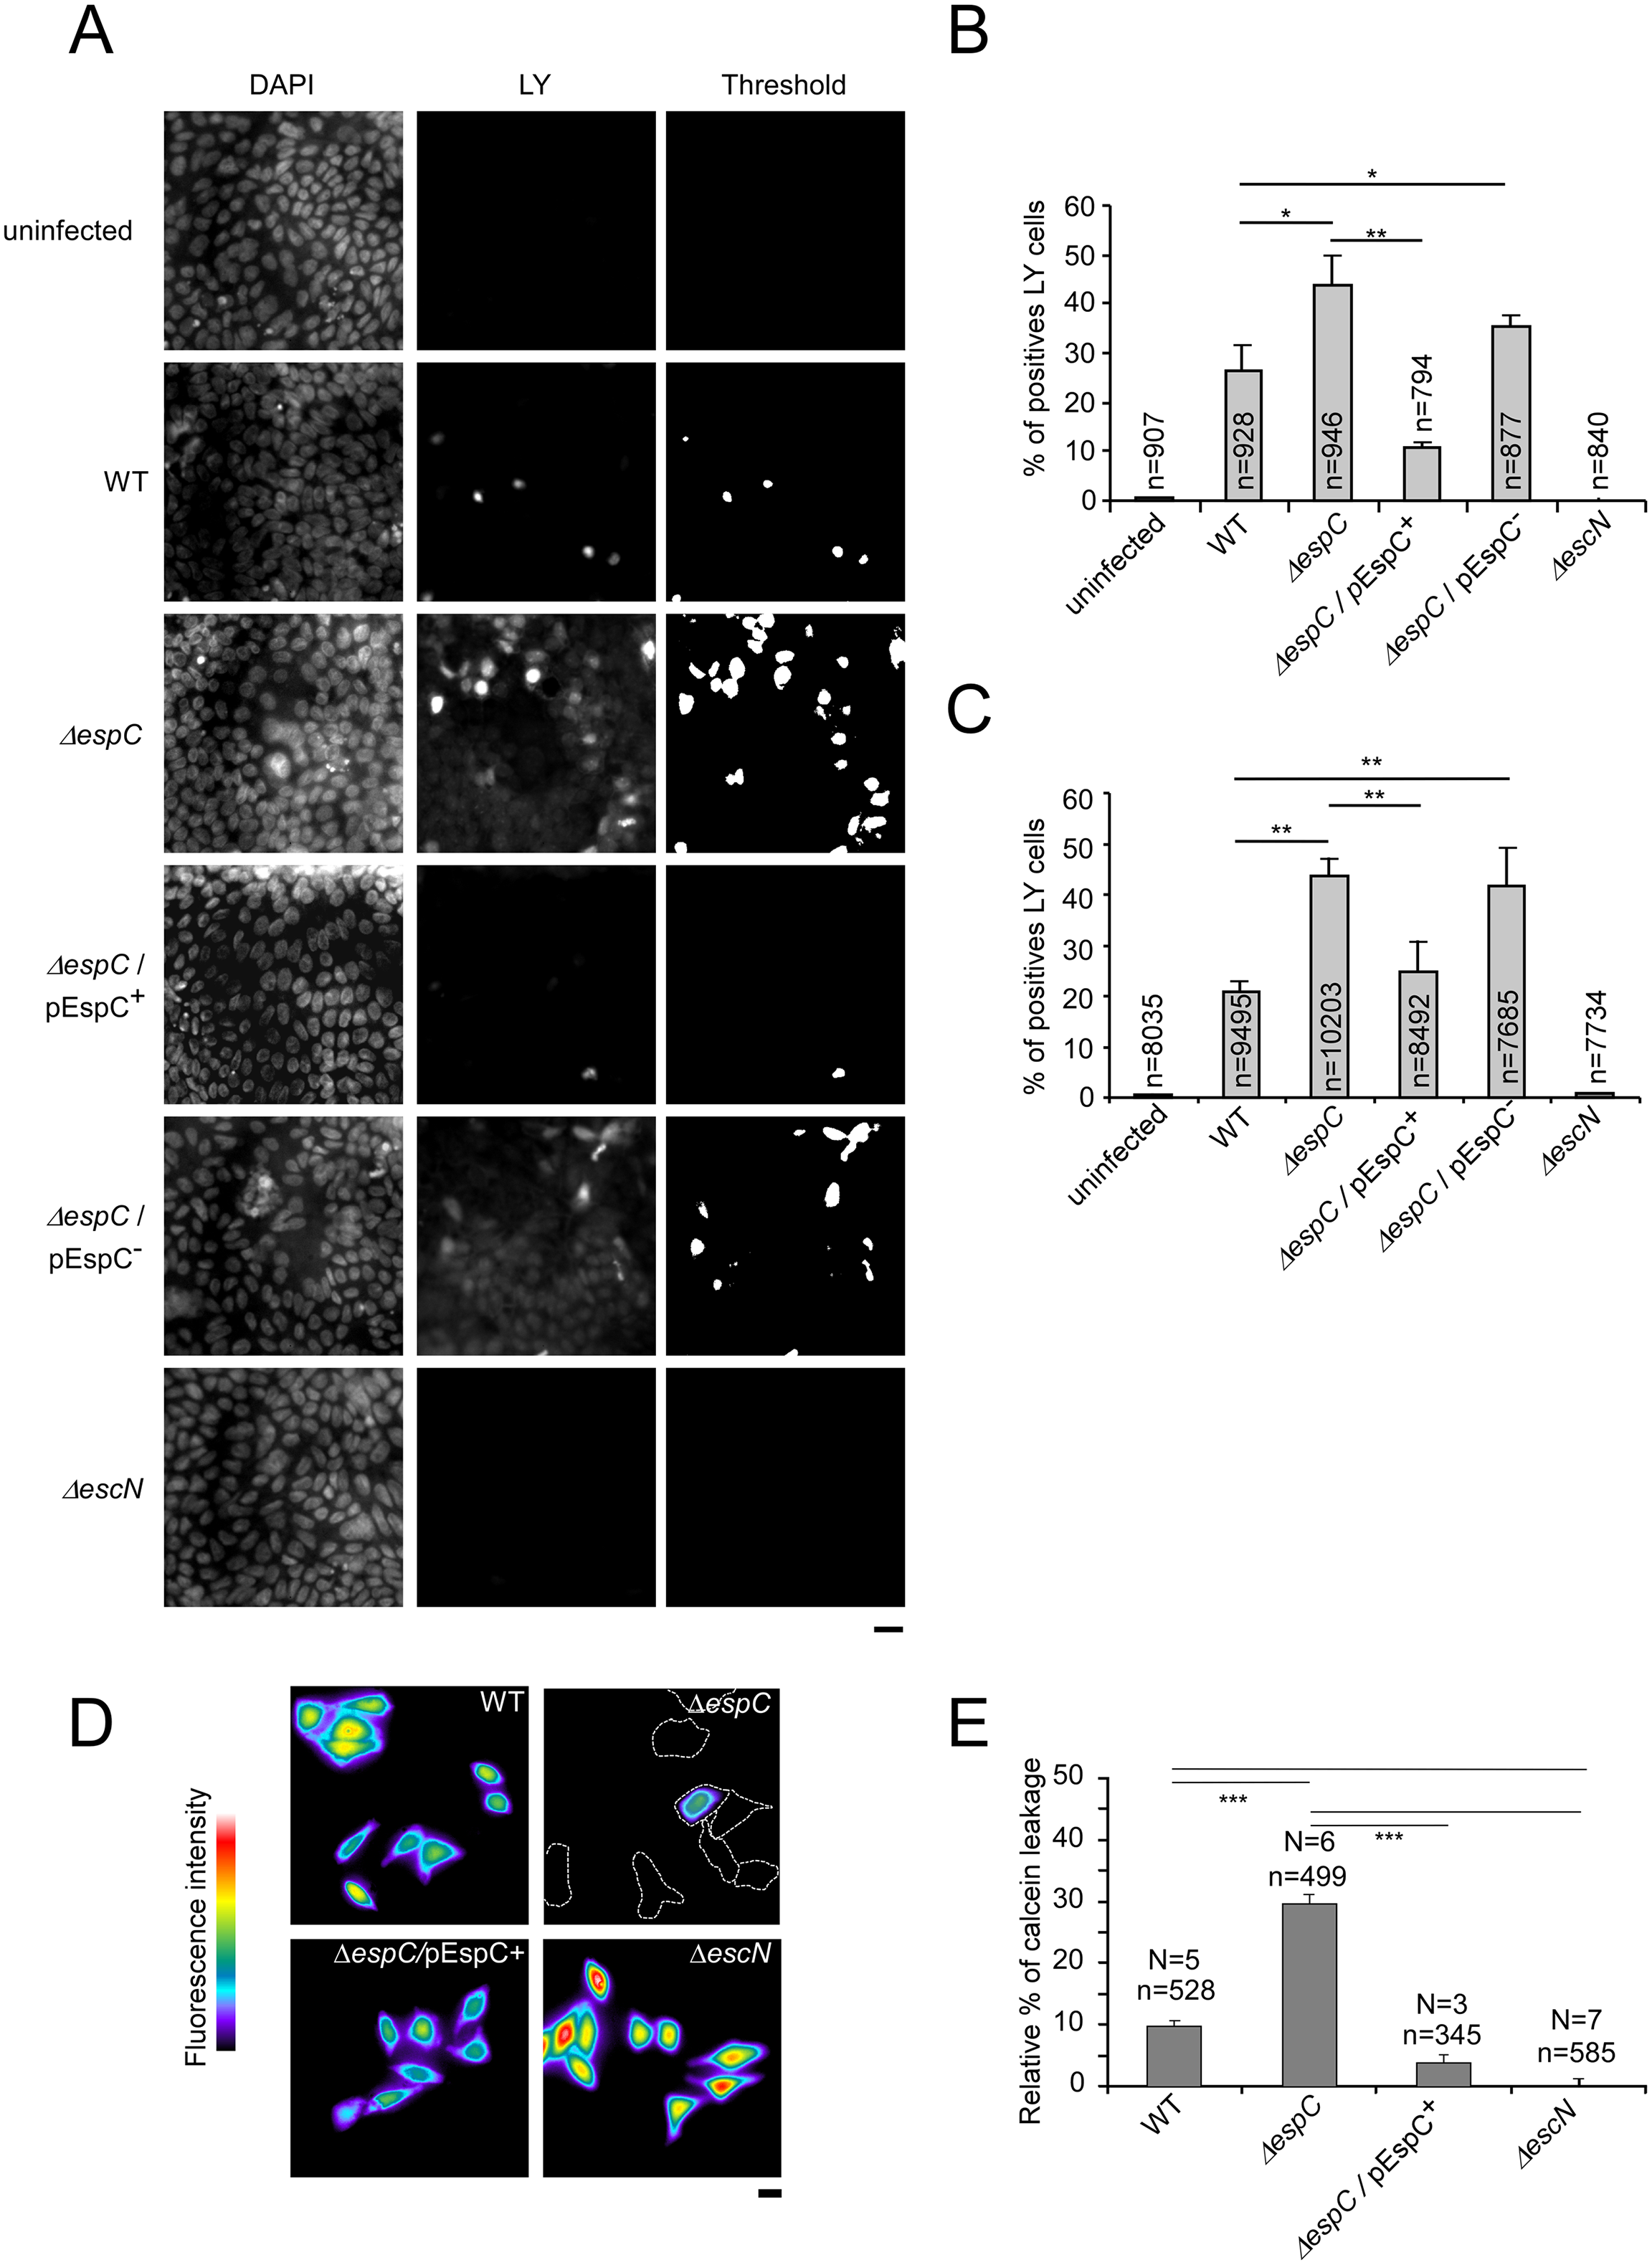 EspC controls pore formation mediated by the T3SS during cell infection.